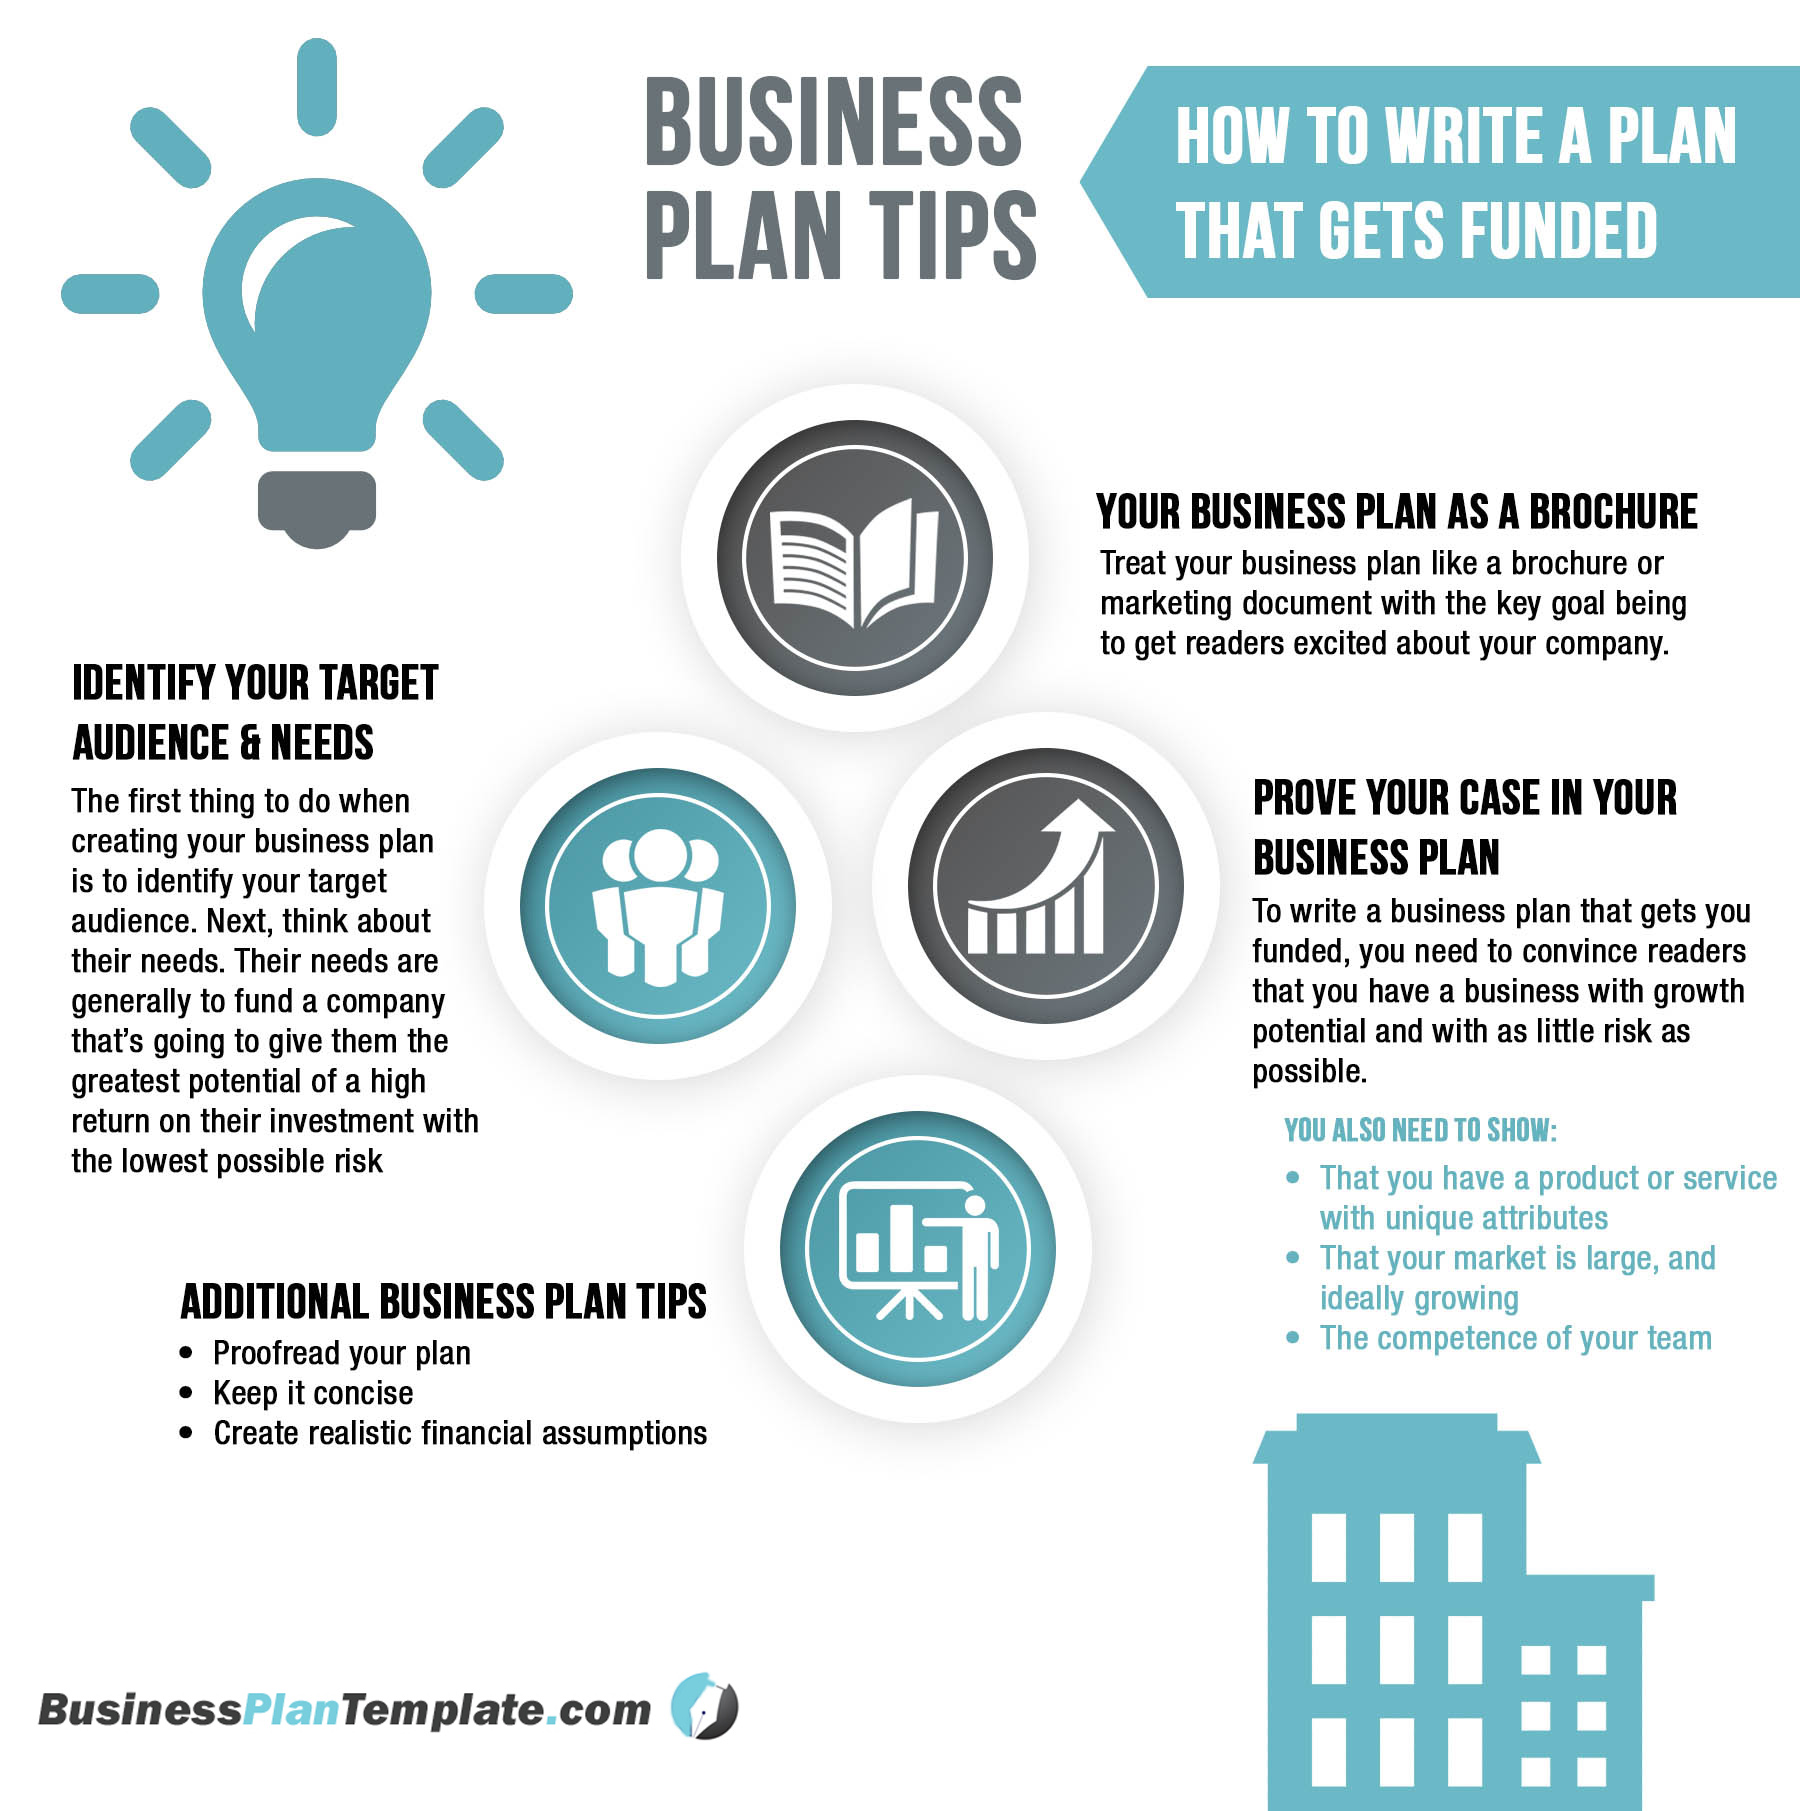 Business-Plan-Tips-Infographic